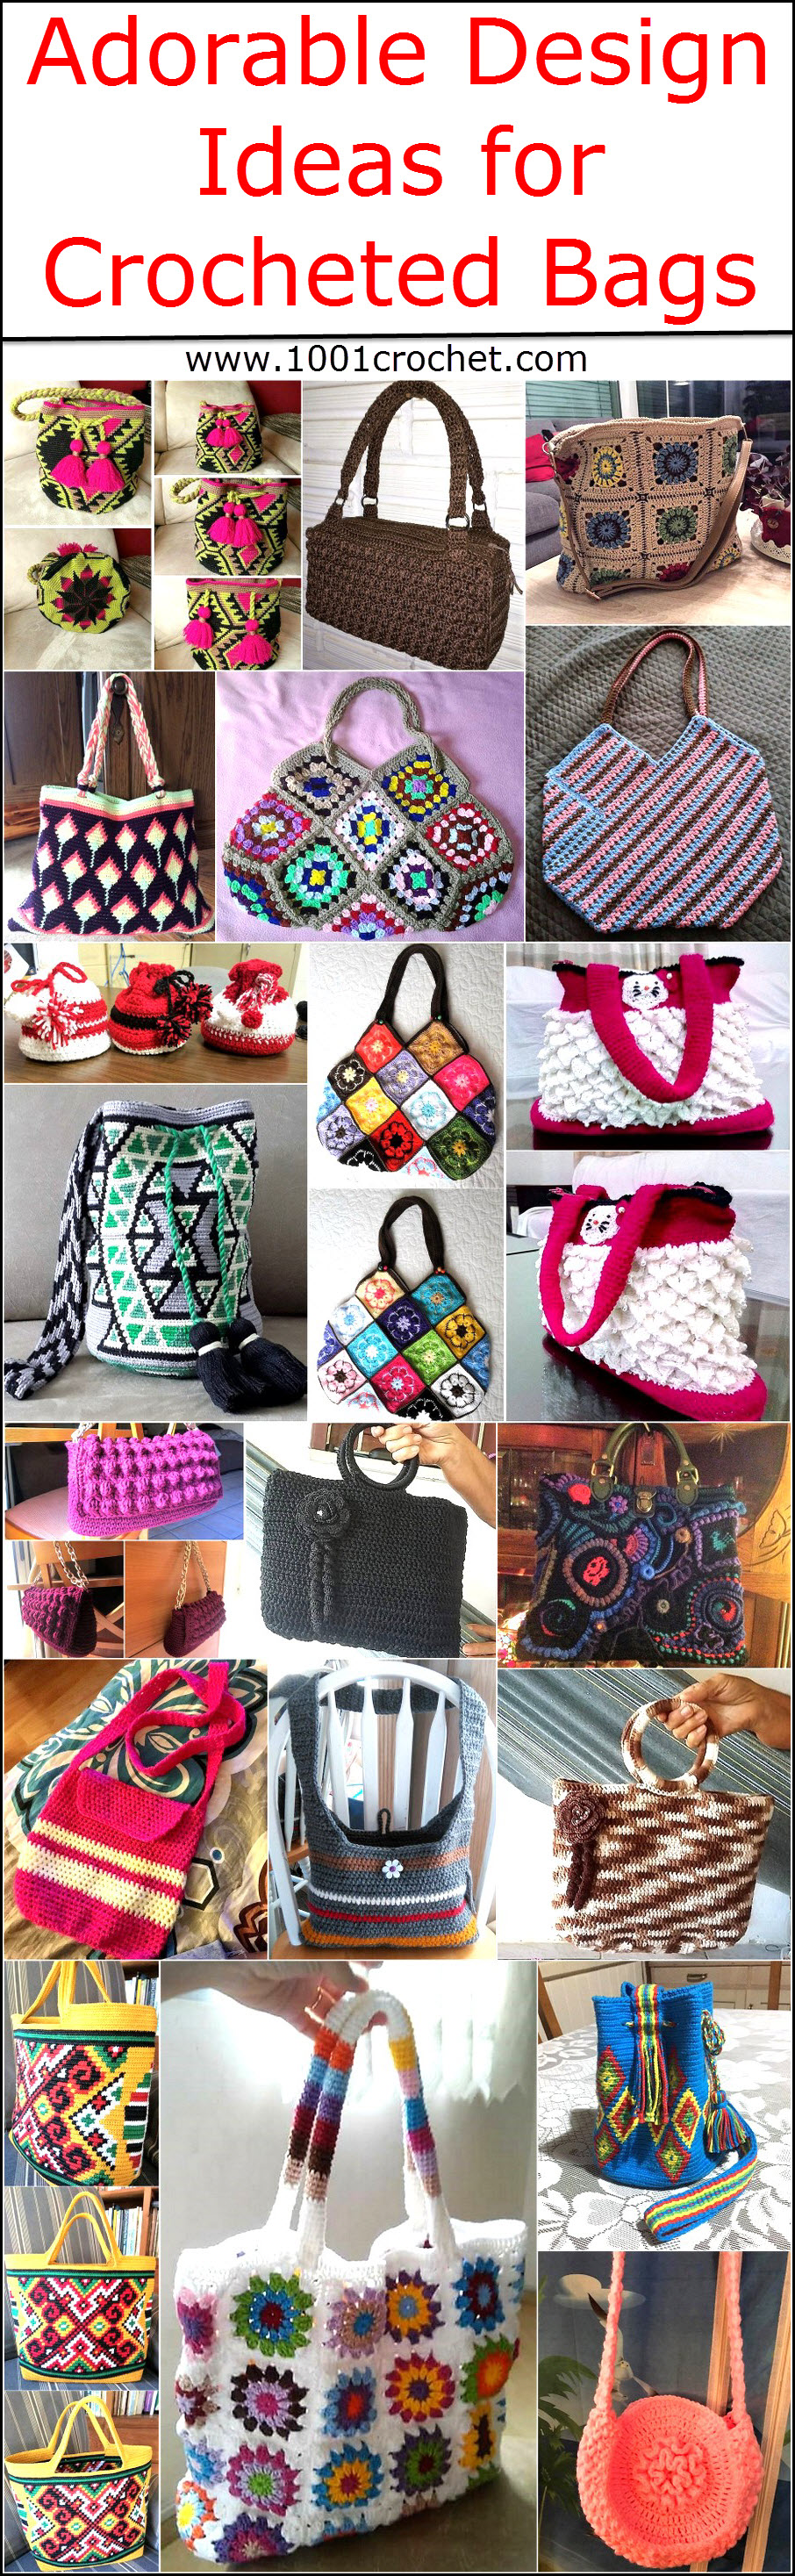 Adorable Design Ideas for Crocheted Bags